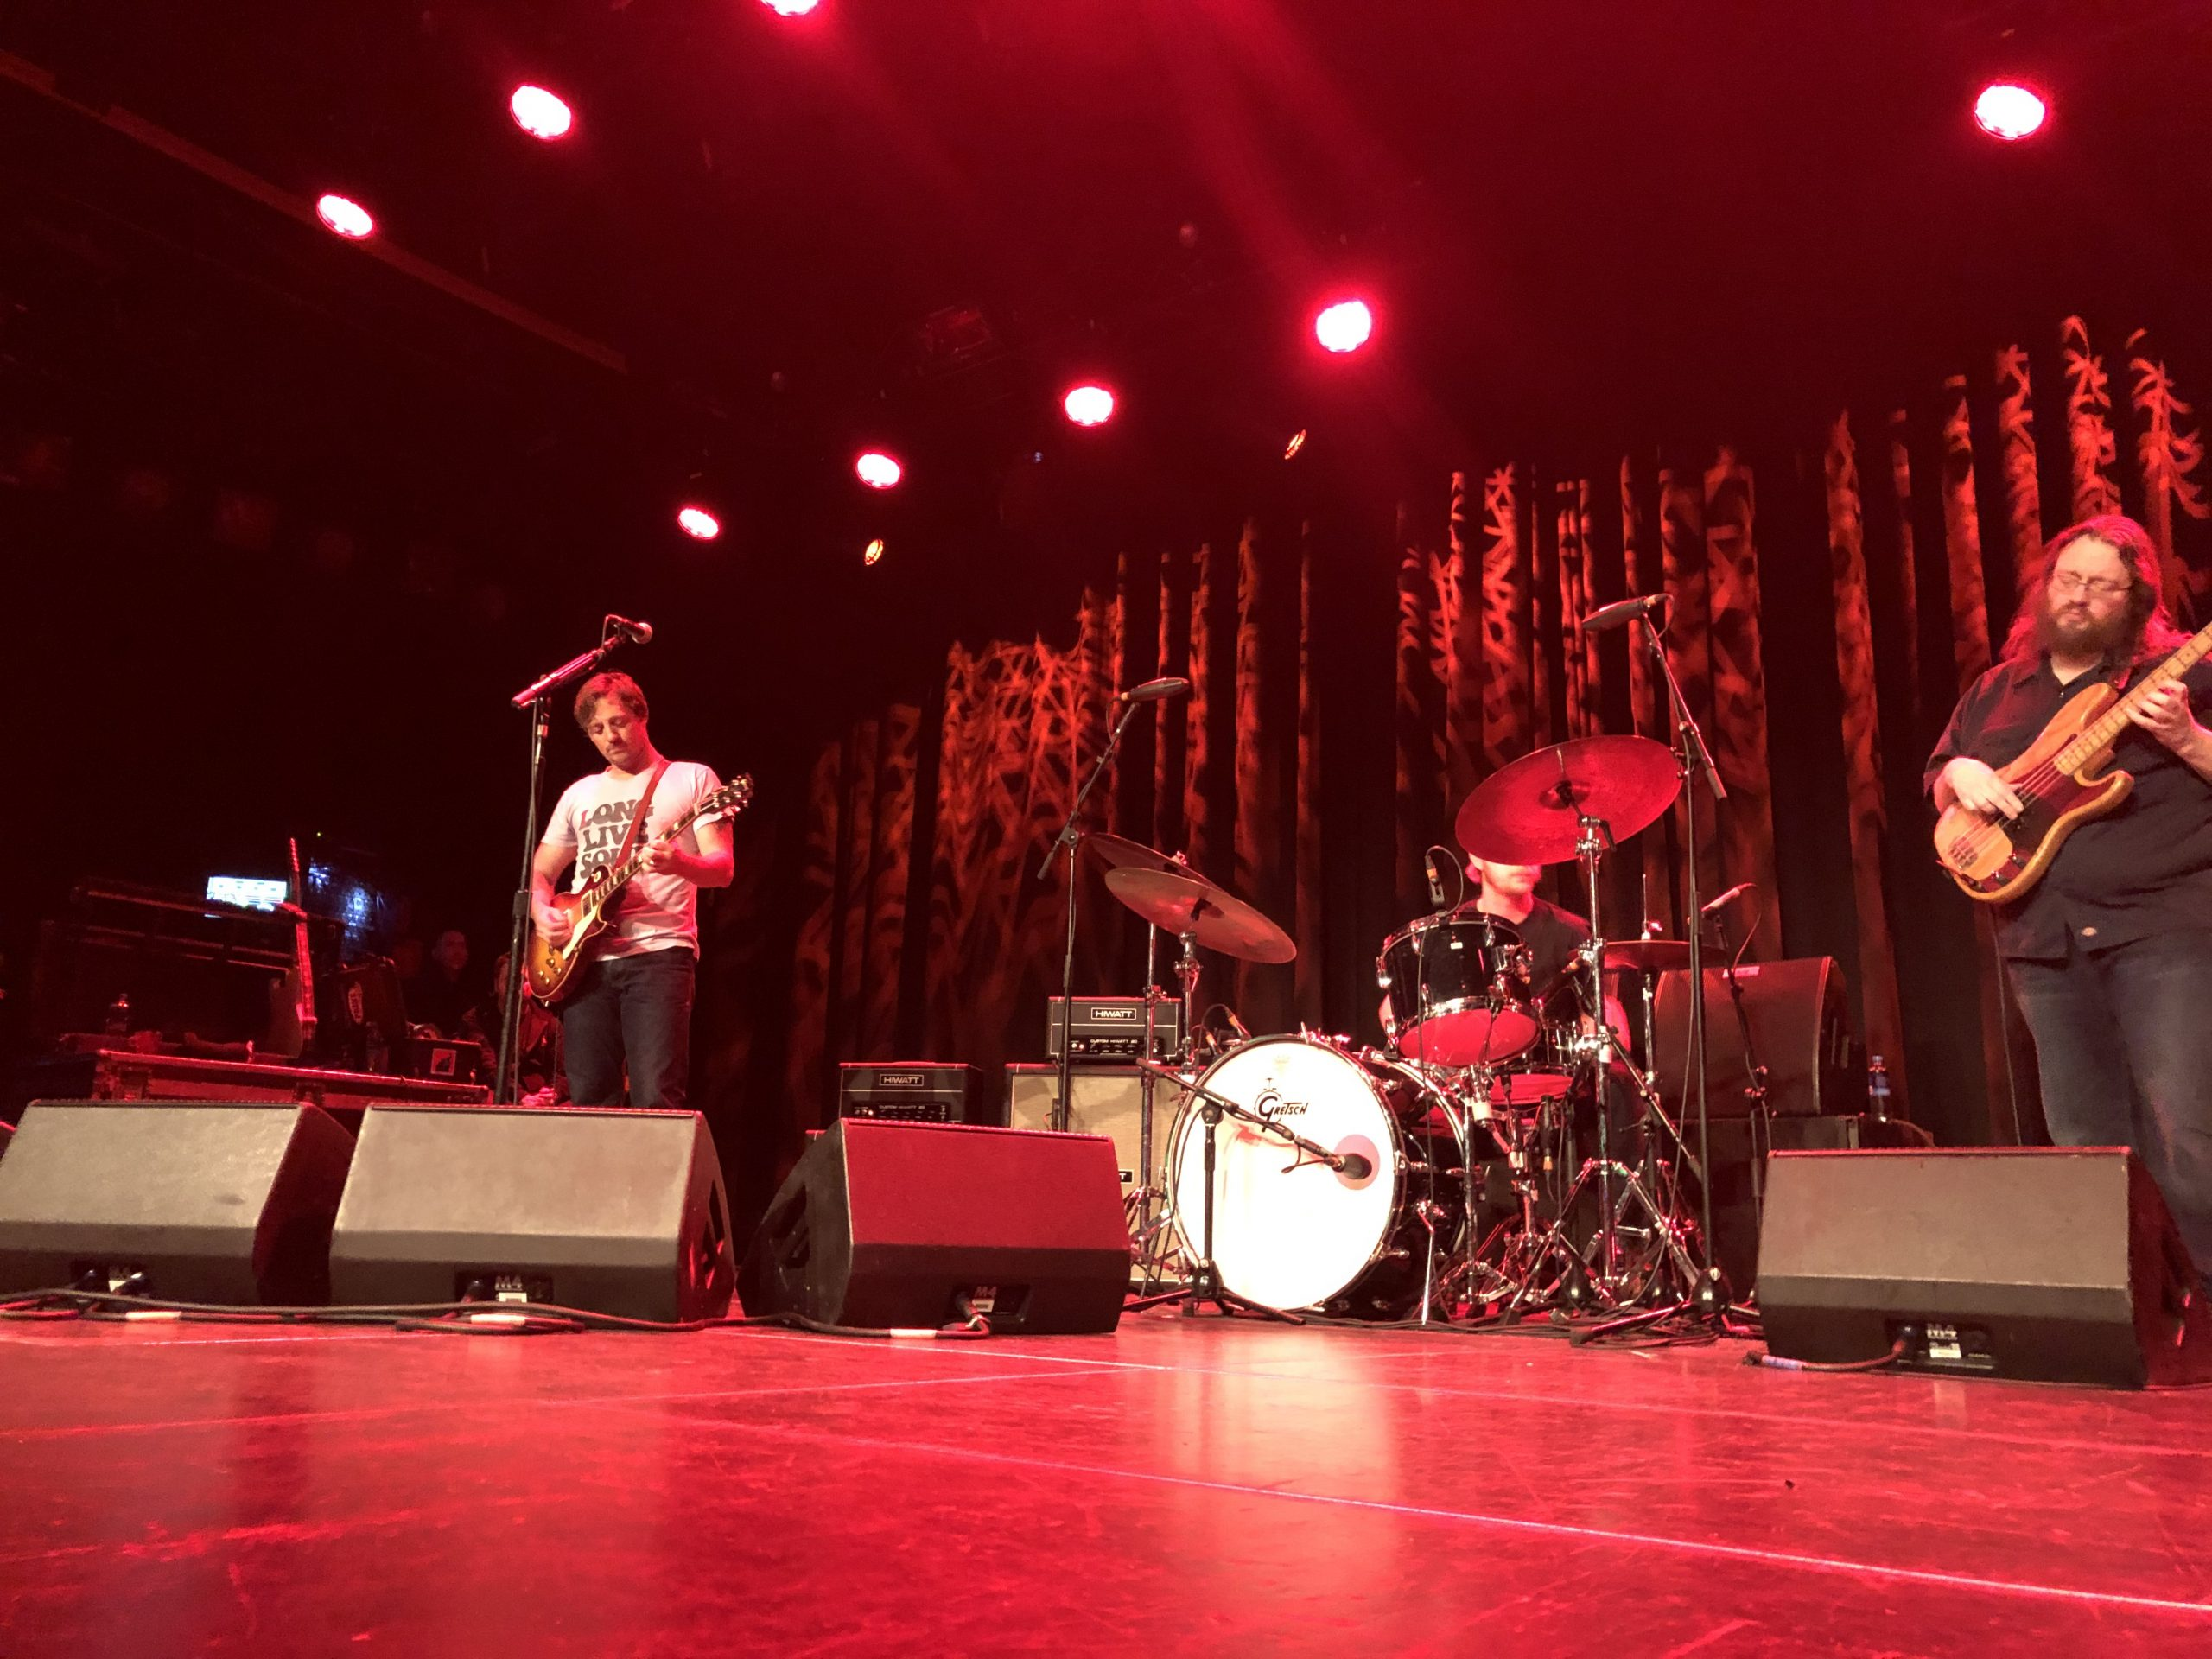 Concertreview: Where the f*ck is Sturgill Simpson? Amsterdam!